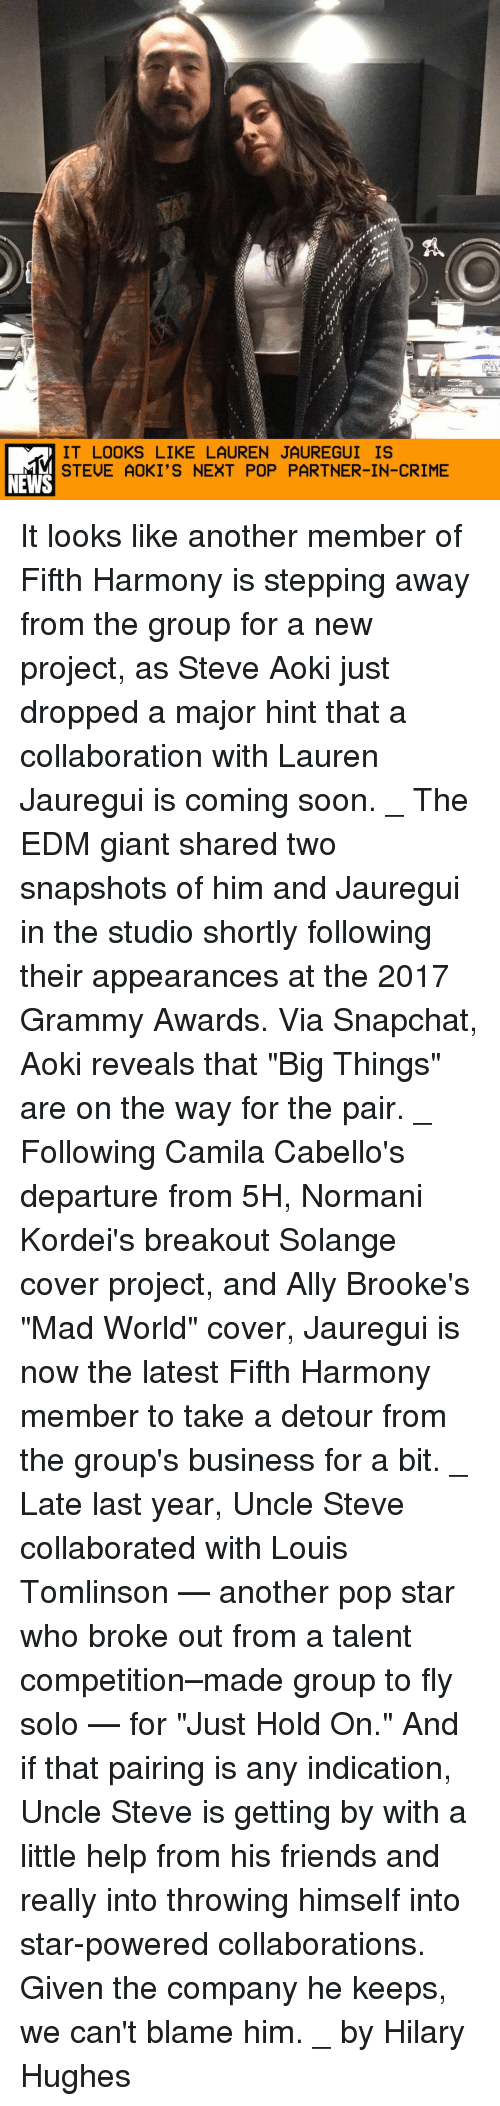 """indices: IT LOOKS LIKE LAUREN JAUREGUI IS  STEUE AOKI'S NEXT POP PARTNER-IN-CRIME  NEWS It looks like another member of Fifth Harmony is stepping away from the group for a new project, as Steve Aoki just dropped a major hint that a collaboration with Lauren Jauregui is coming soon. _ The EDM giant shared two snapshots of him and Jauregui in the studio shortly following their appearances at the 2017 Grammy Awards. Via Snapchat, Aoki reveals that """"Big Things"""" are on the way for the pair. _ Following Camila Cabello's departure from 5H, Normani Kordei's breakout Solange cover project, and Ally Brooke's """"Mad World"""" cover, Jauregui is now the latest Fifth Harmony member to take a detour from the group's business for a bit. _ Late last year, Uncle Steve collaborated with Louis Tomlinson — another pop star who broke out from a talent competition–made group to fly solo — for """"Just Hold On."""" And if that pairing is any indication, Uncle Steve is getting by with a little help from his friends and really into throwing himself into star-powered collaborations. Given the company he keeps, we can't blame him. _ by Hilary Hughes"""